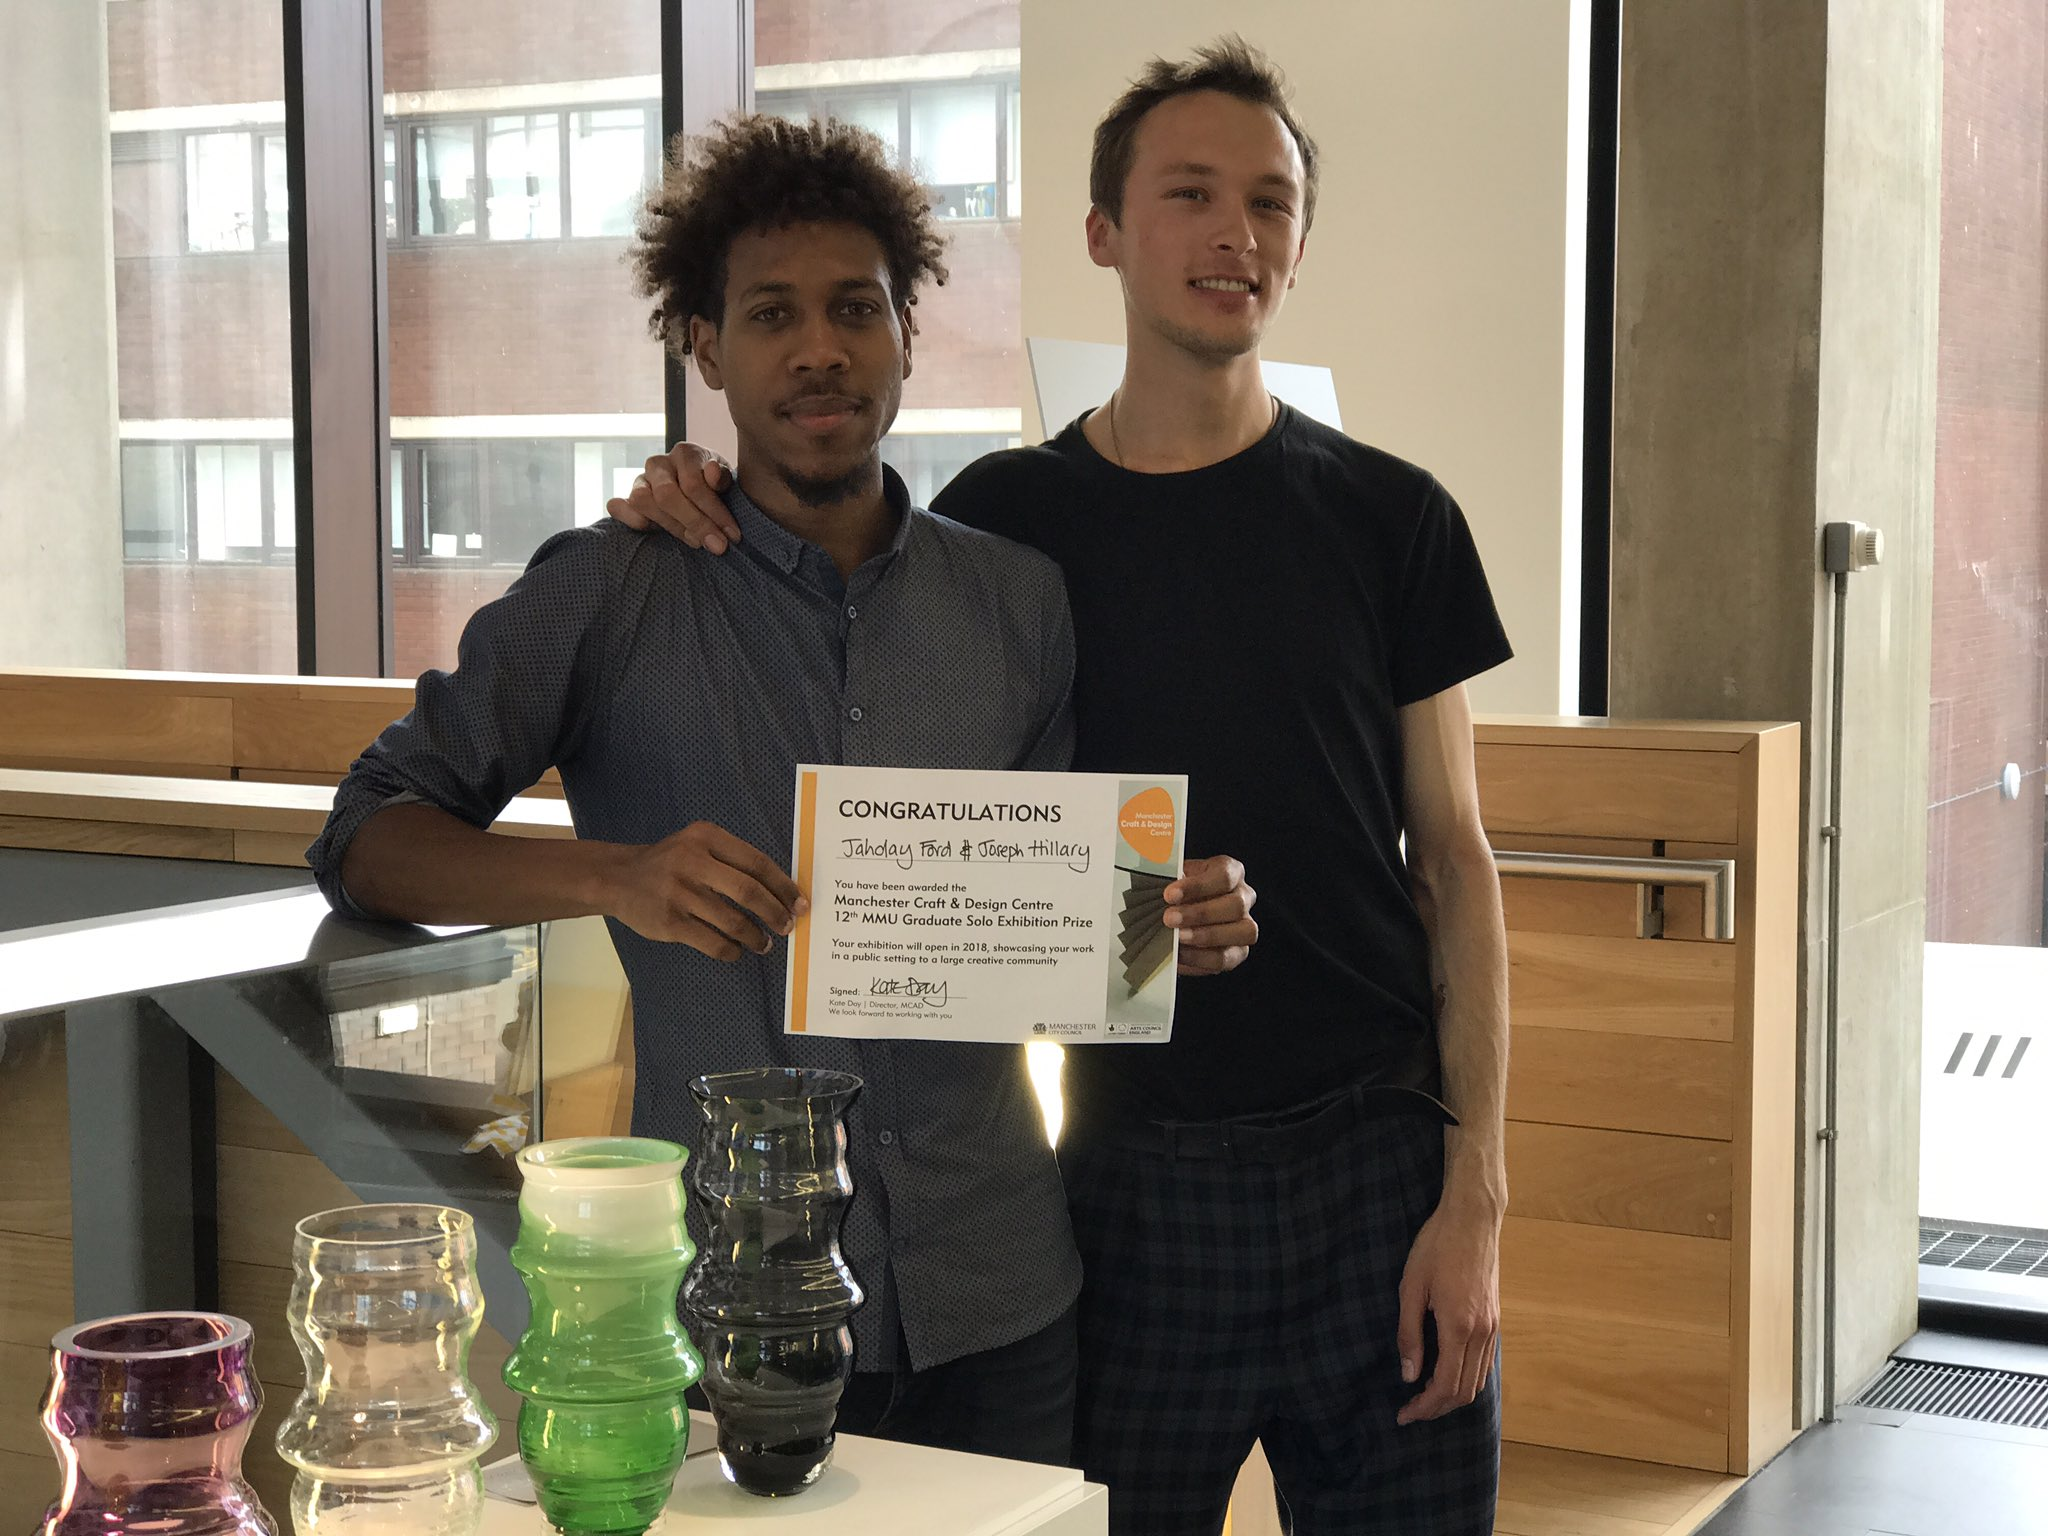 And the winners are... huge congrats to the TWO winners of our MMU Graduate Award this year - Joe Hillary & Jahday Ford #McrDegreeShow17 https://t.co/oK39NiGtvI